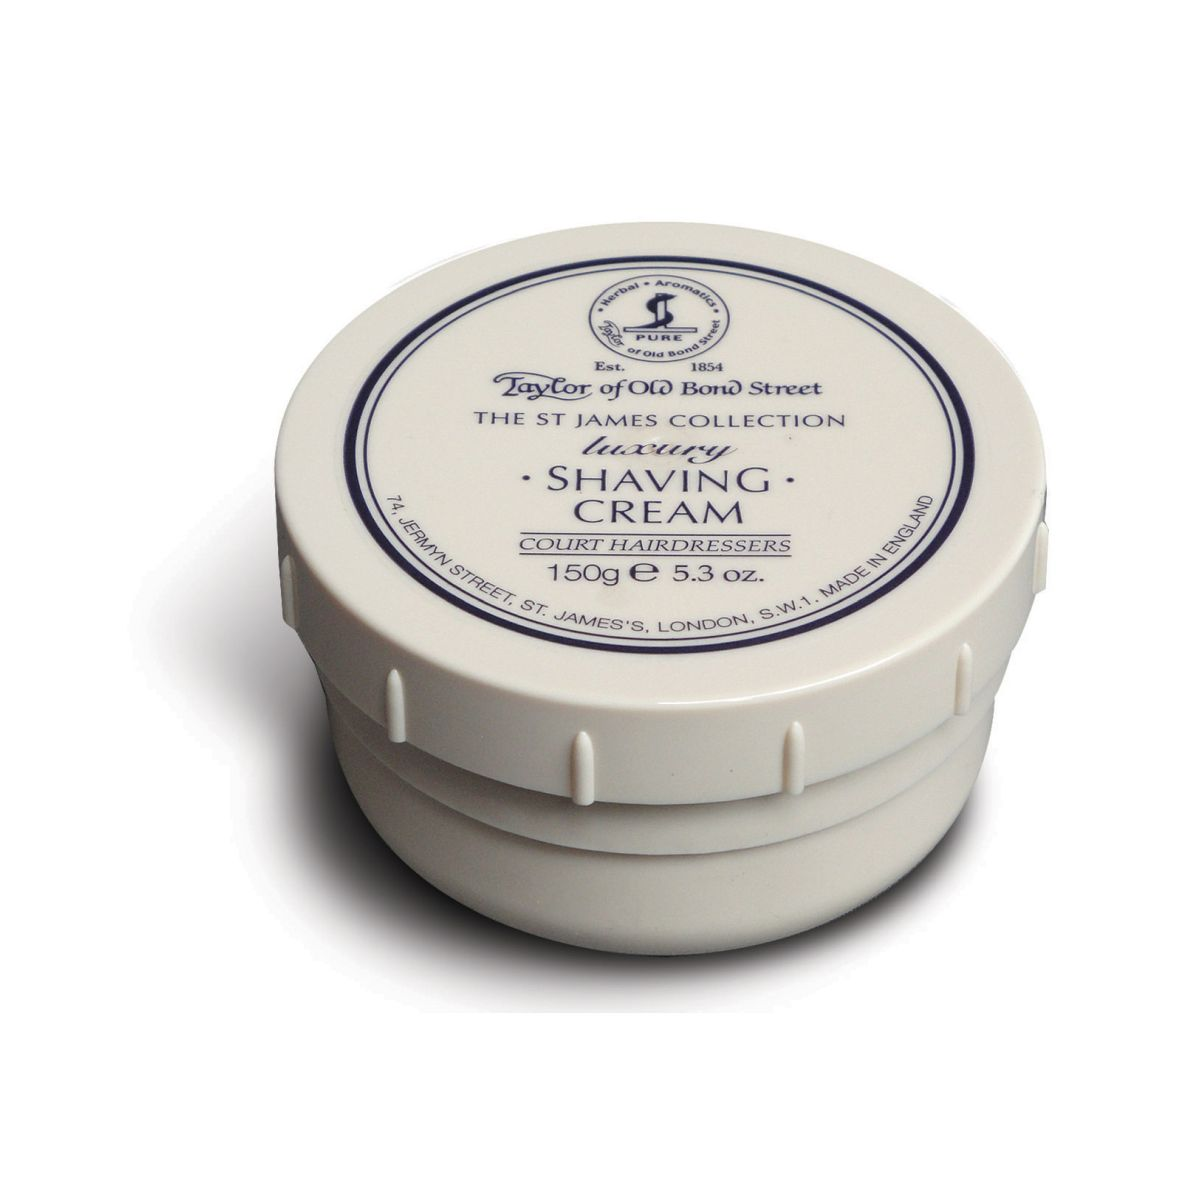 01015 St James 1 - Taylor Of Old Bond Street St James Shaving Cream Bowl 150G - 01015